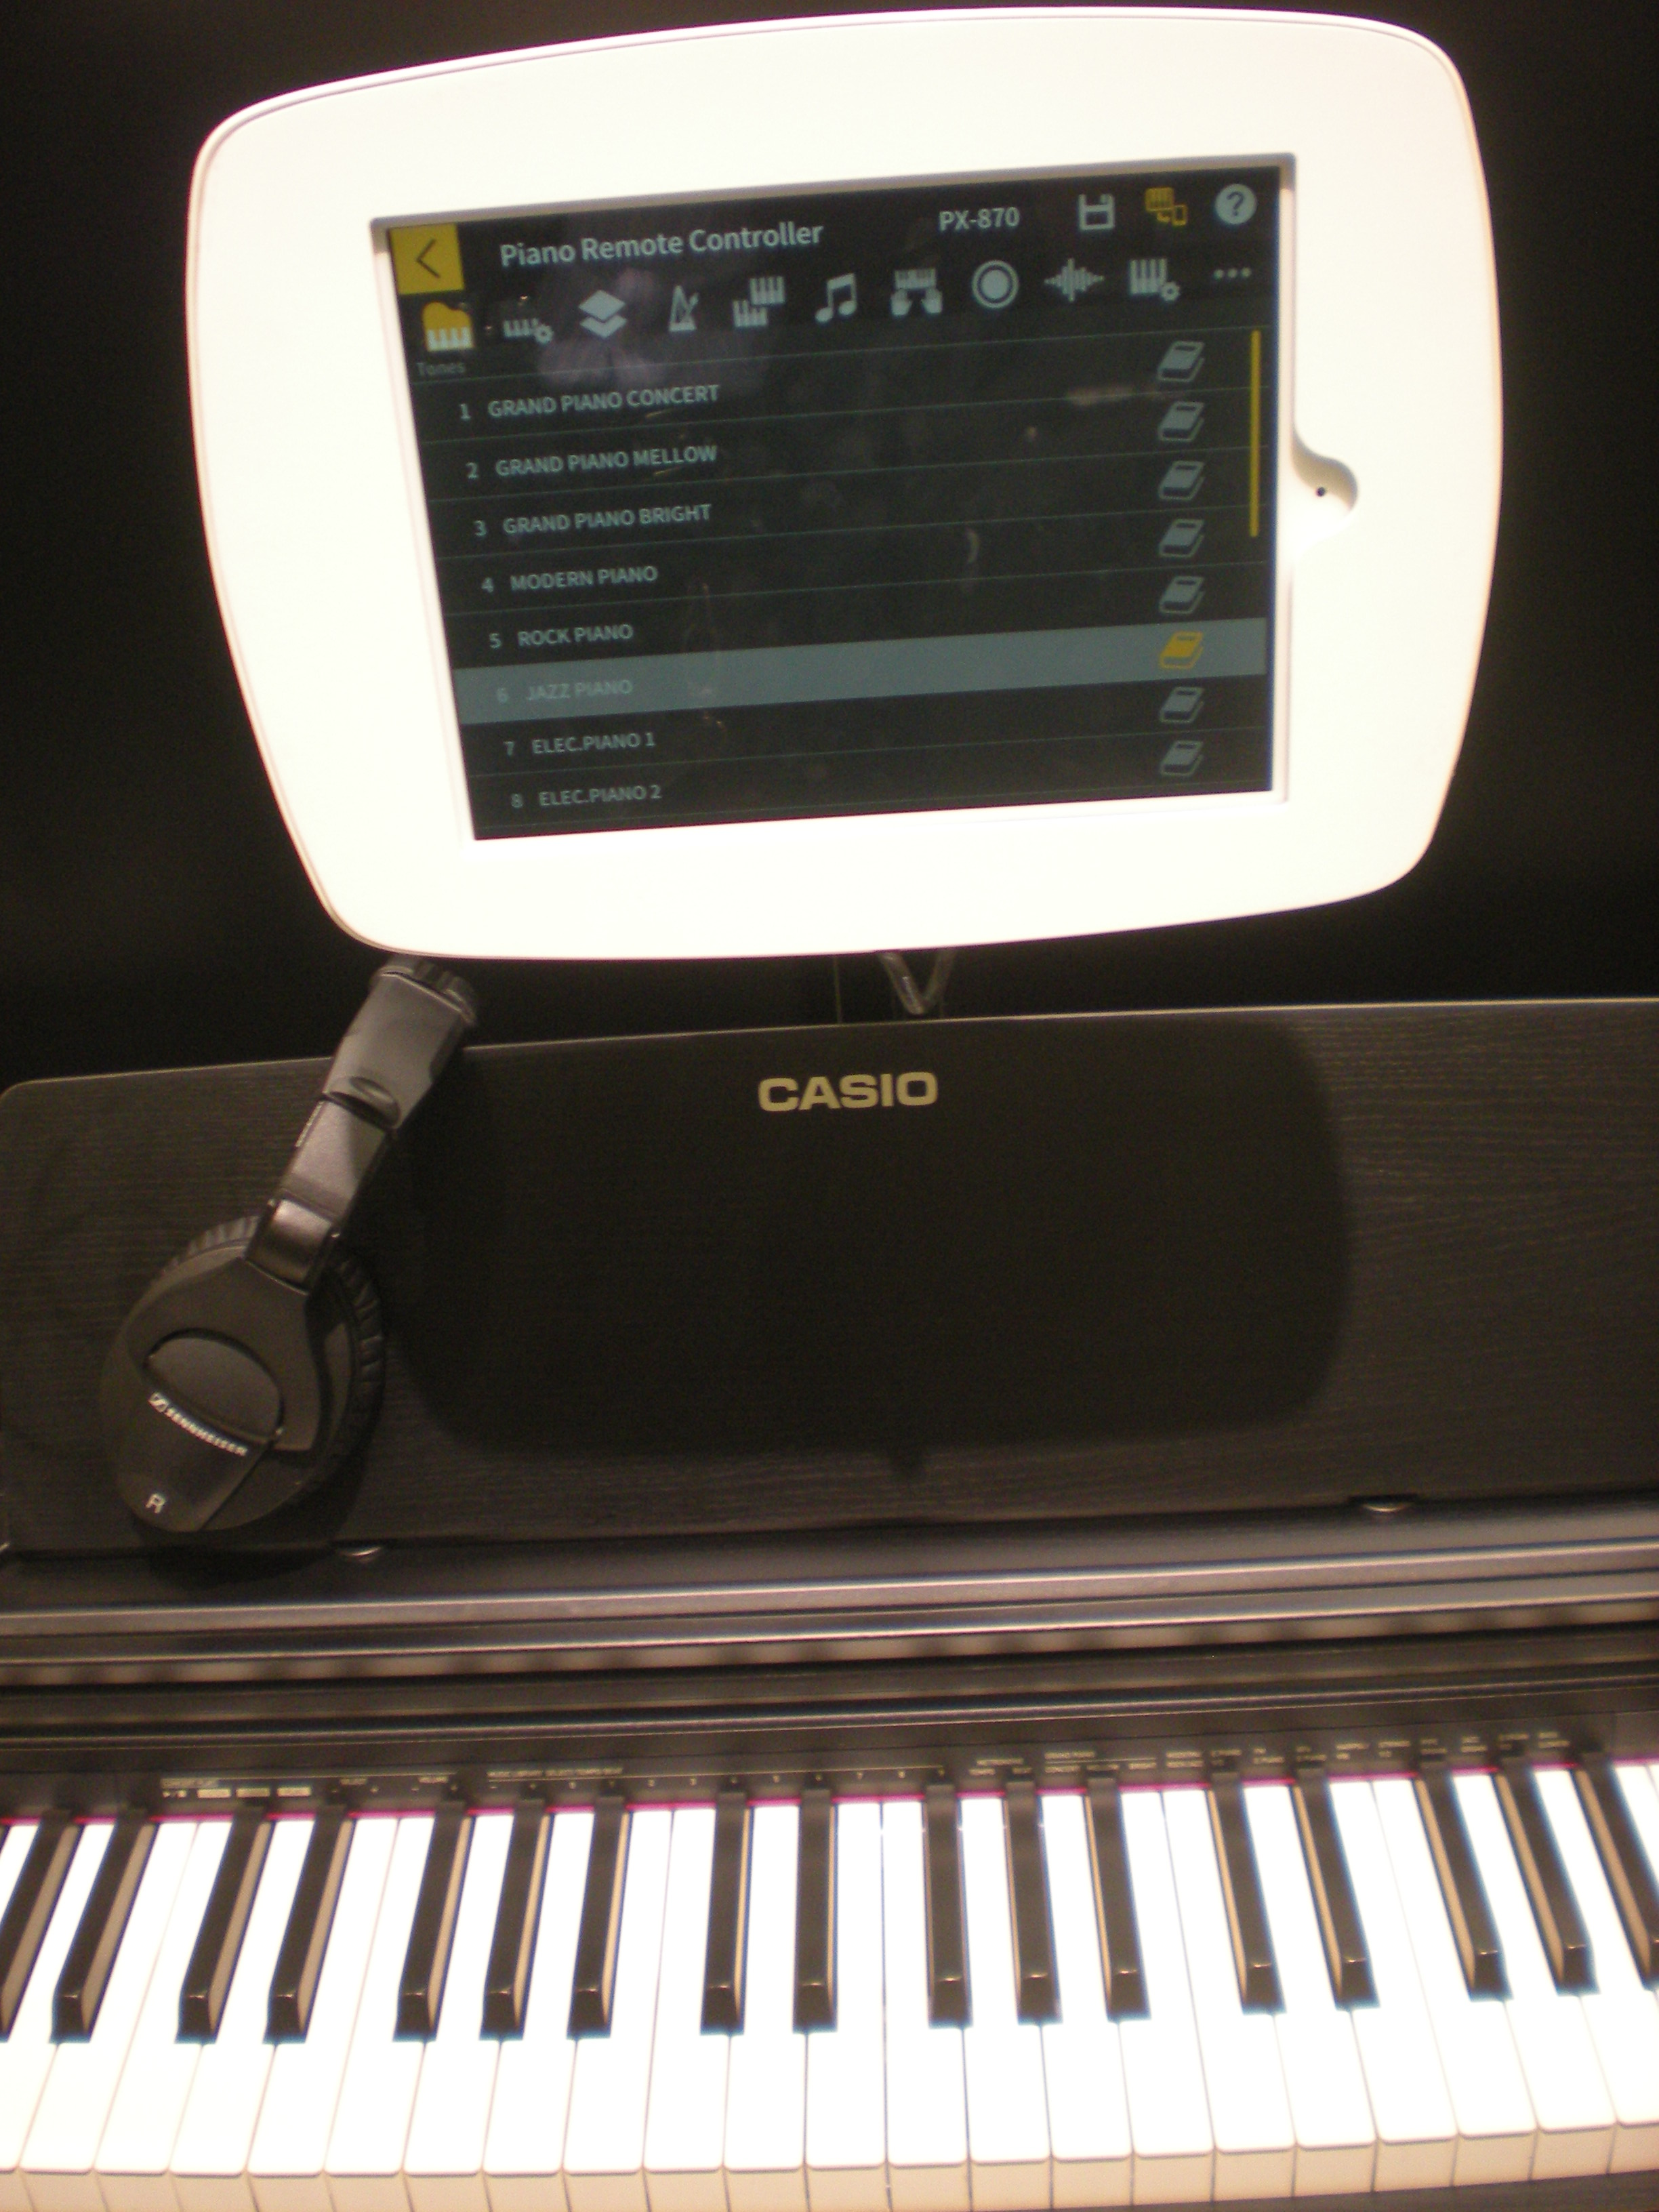 Casio PX-870, Chordana Play Piano